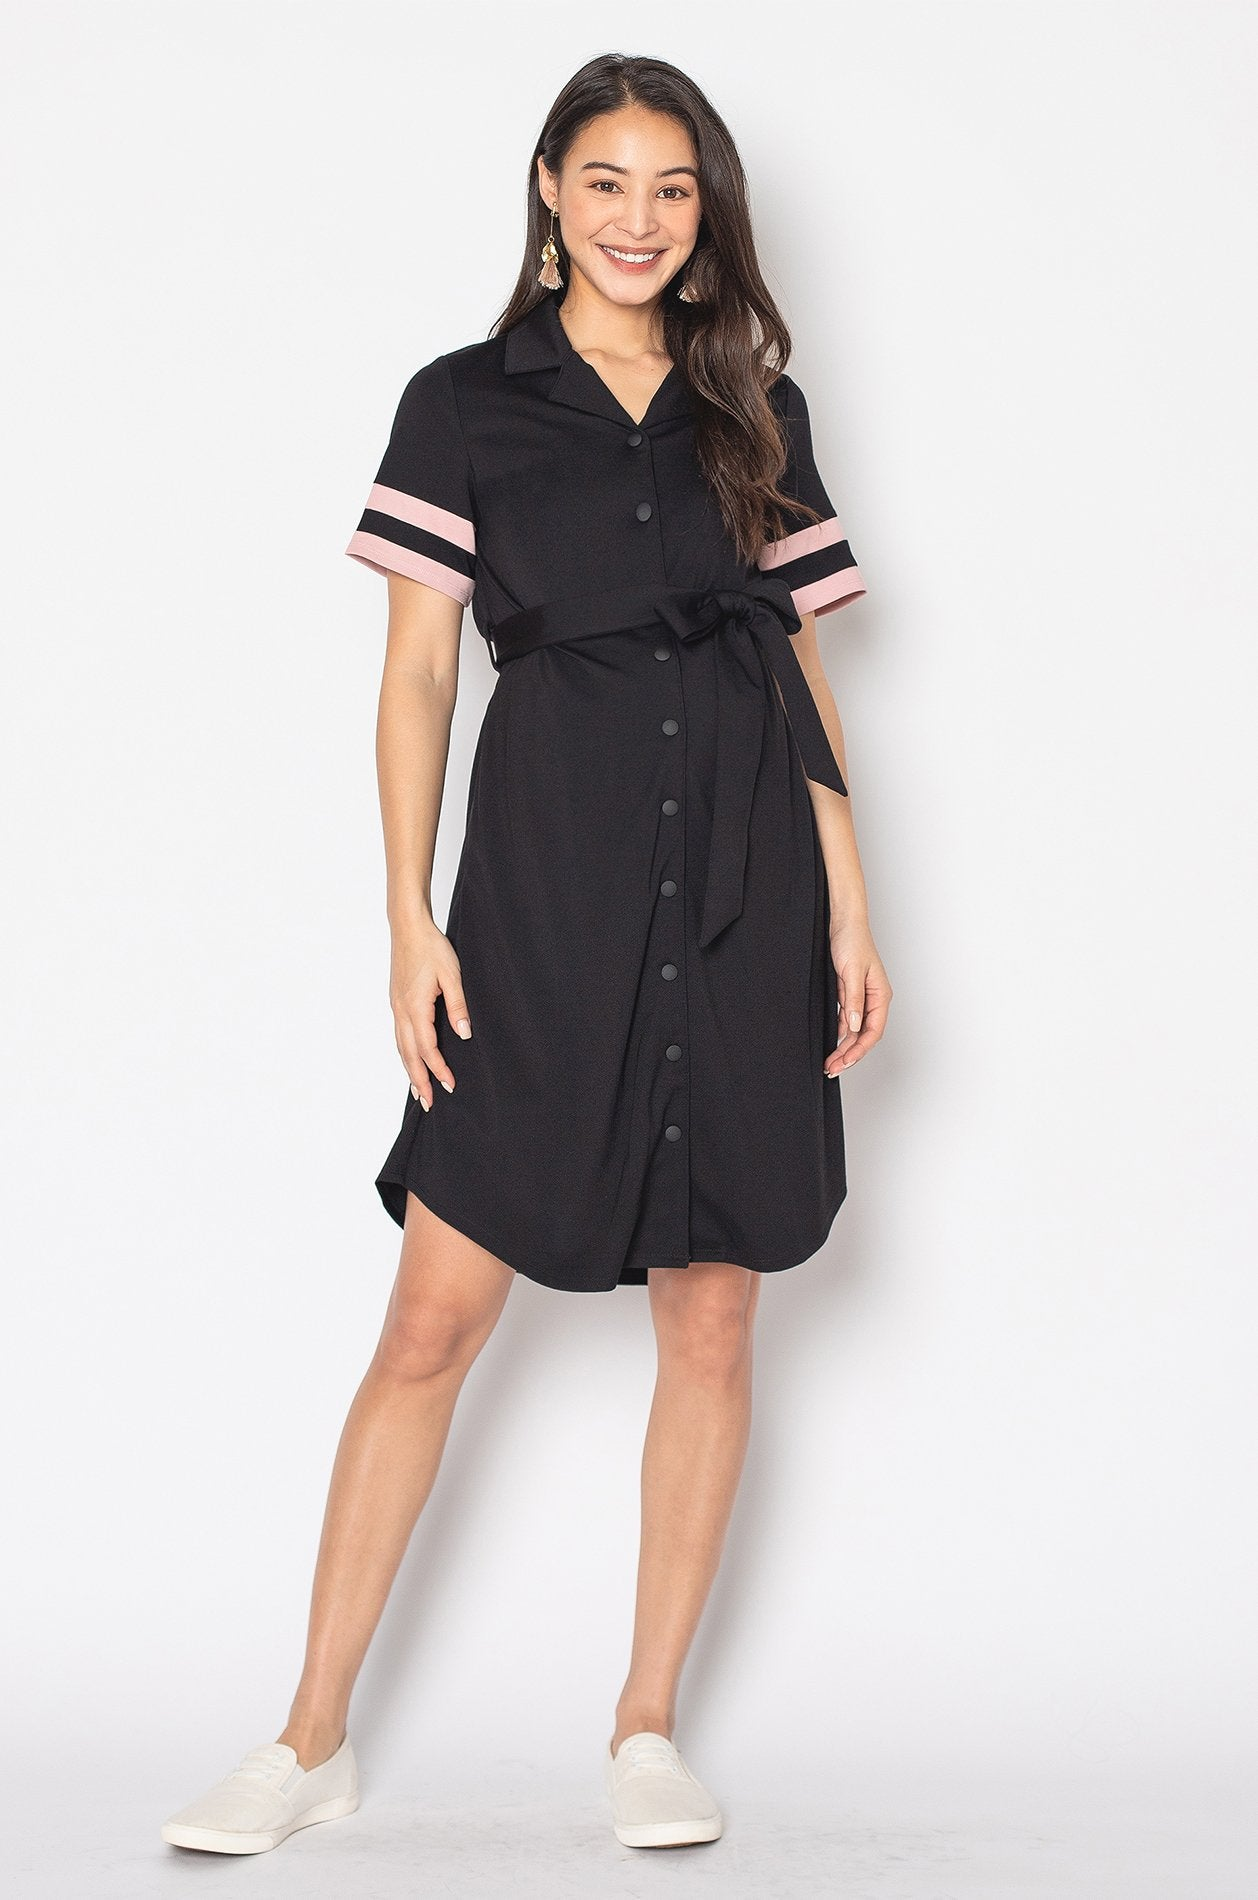 Hanna Striped Hem Nursing Dress in Black  by Jump Eat Cry - Maternity and nursing wear